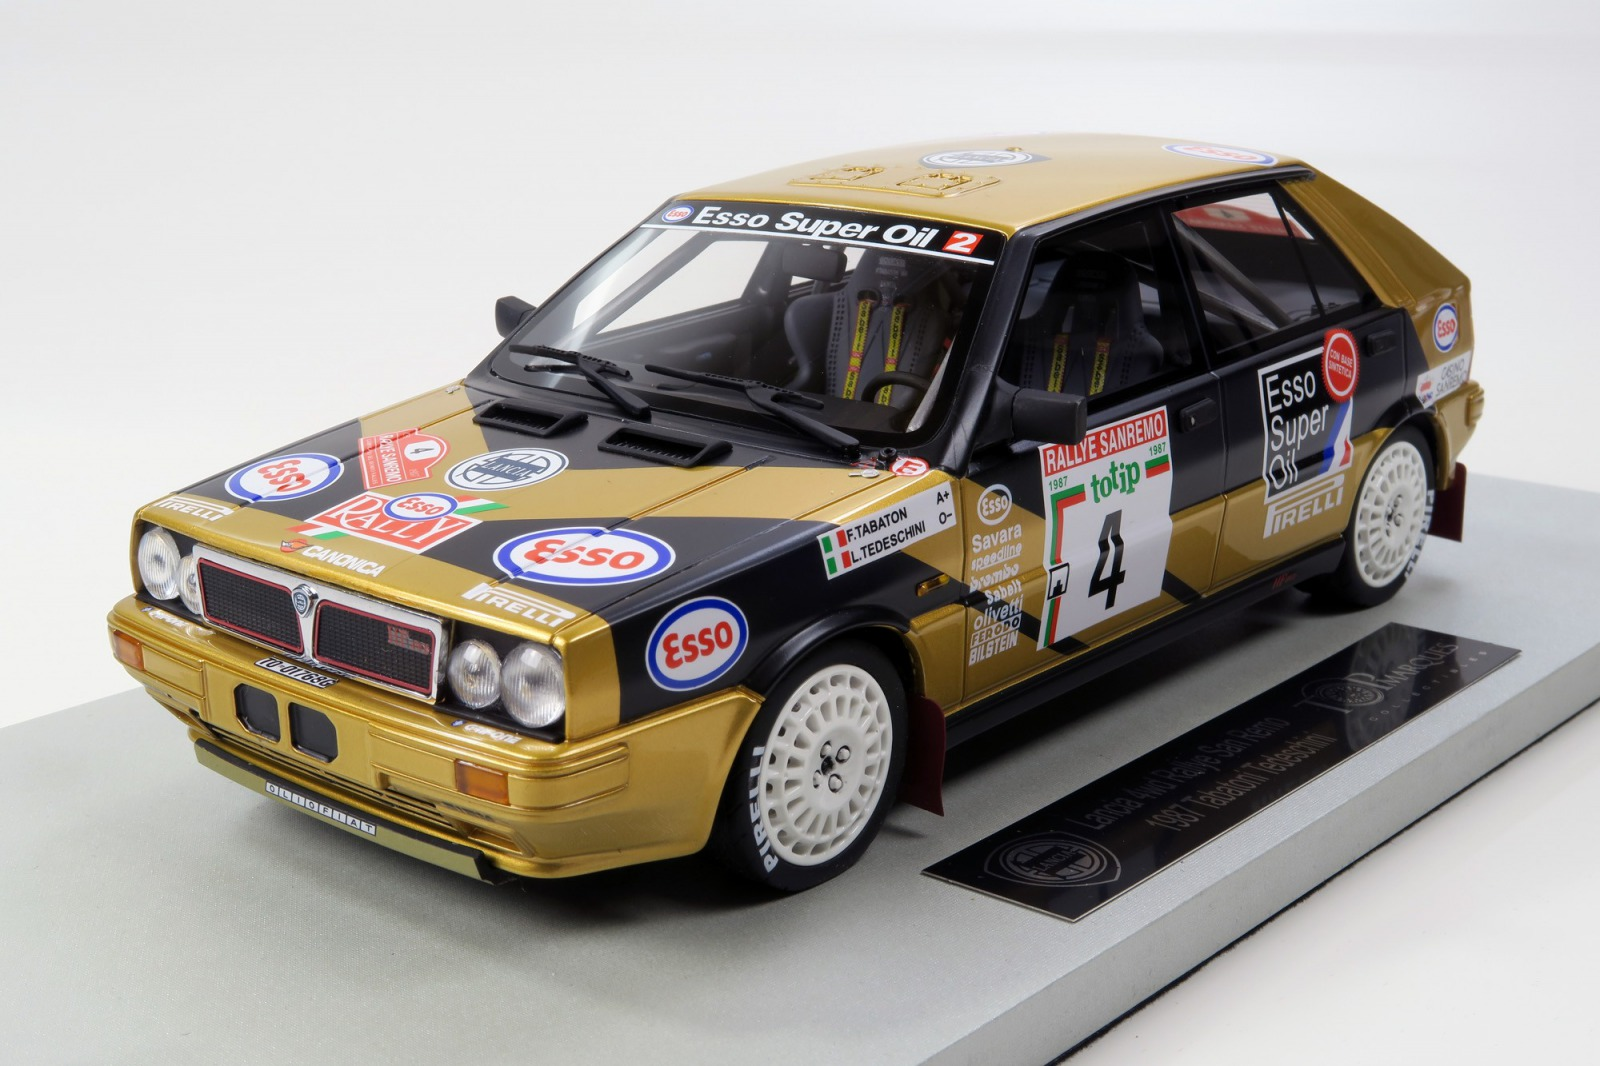 Topmarques トップマルケス 1:18 1987年ラリーサンレモ5位 ランチア デルタ 4WD No.4LANCIA - DELTA HF 4WD ESSO N 4 RALLY 5th SANREMO 1987 F.TABATON - L.TEDESCHINI 1/18 by Topmarques